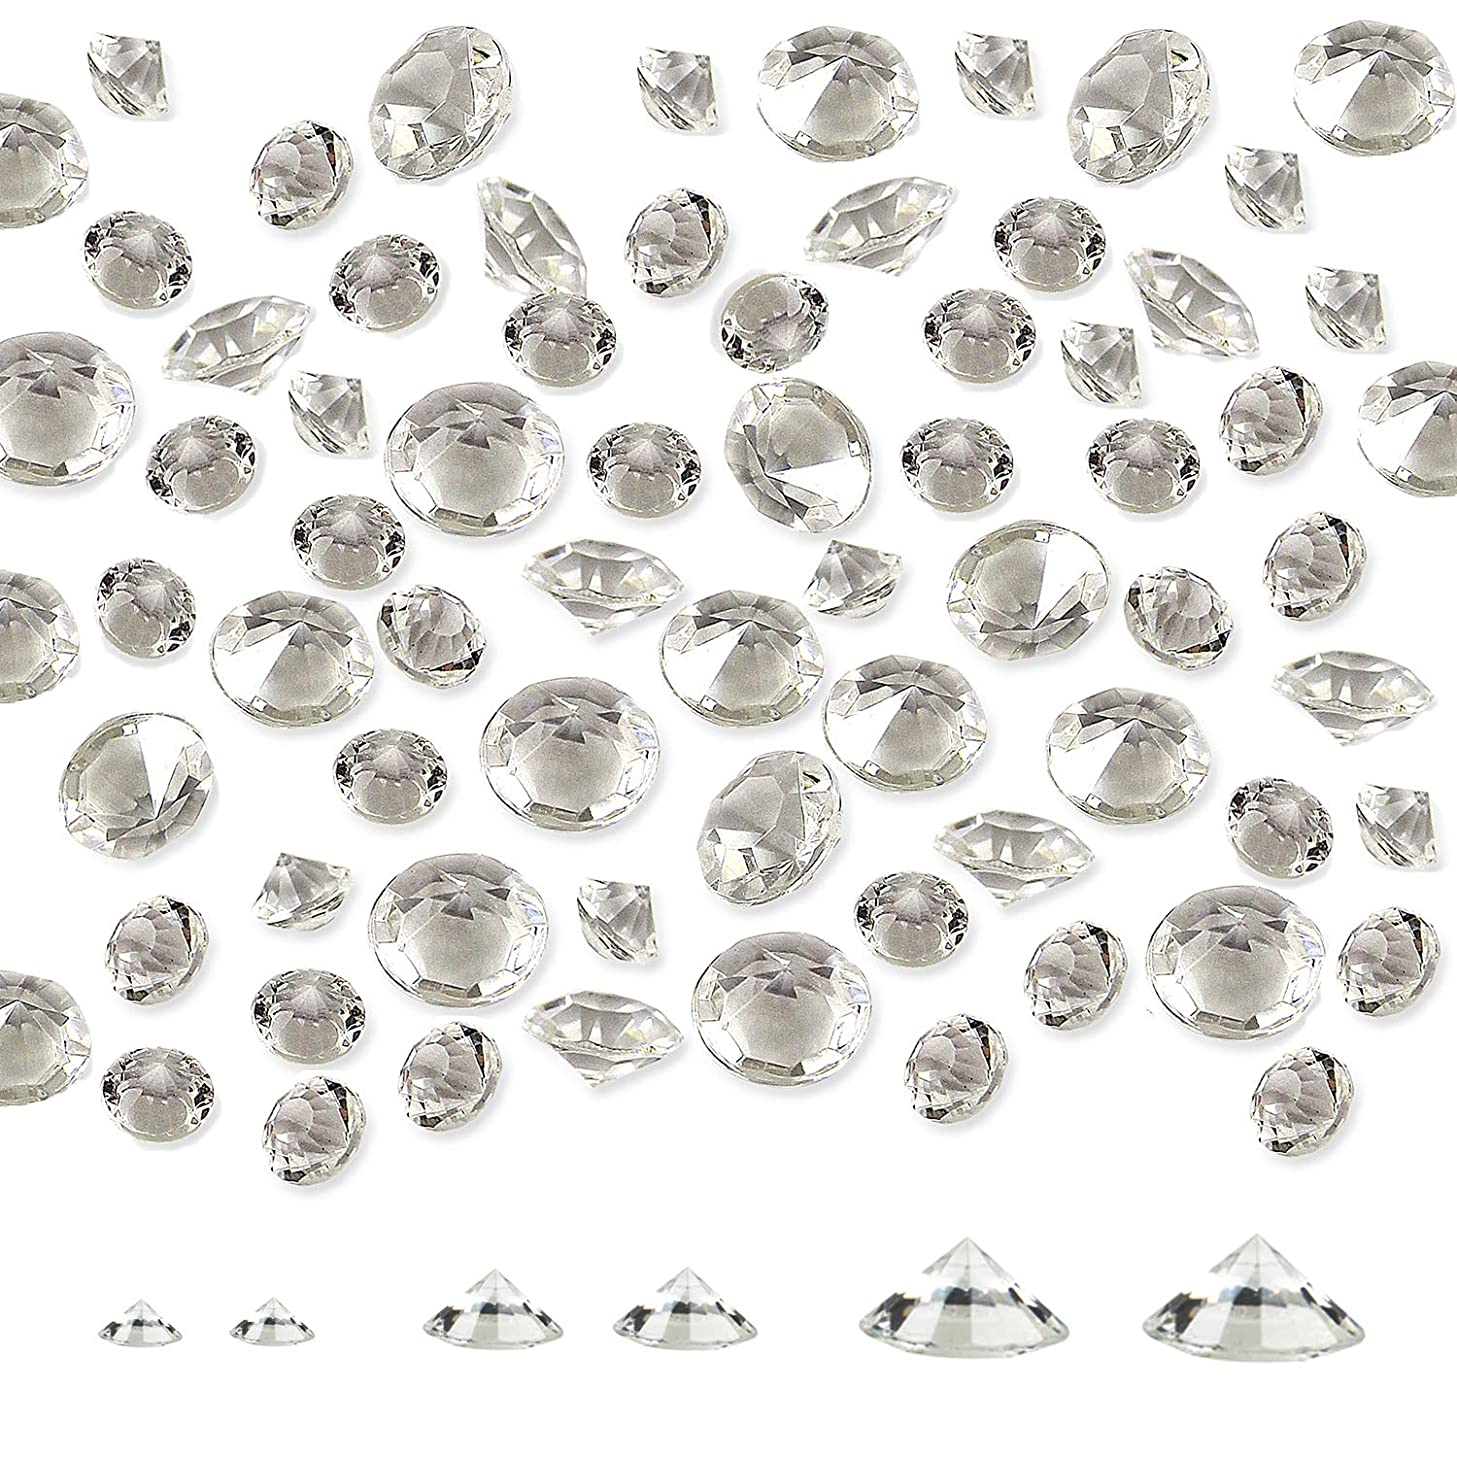 Meching Clear Acrylic Diamonds Crystals (650 PCS) Round Diamond Crystals Treasure Gems for Table Scatters, Vase Fillers, Event, Wedding, Birthday Decoration Favor, Arts & Crafts 10/14/20mm(Multi)